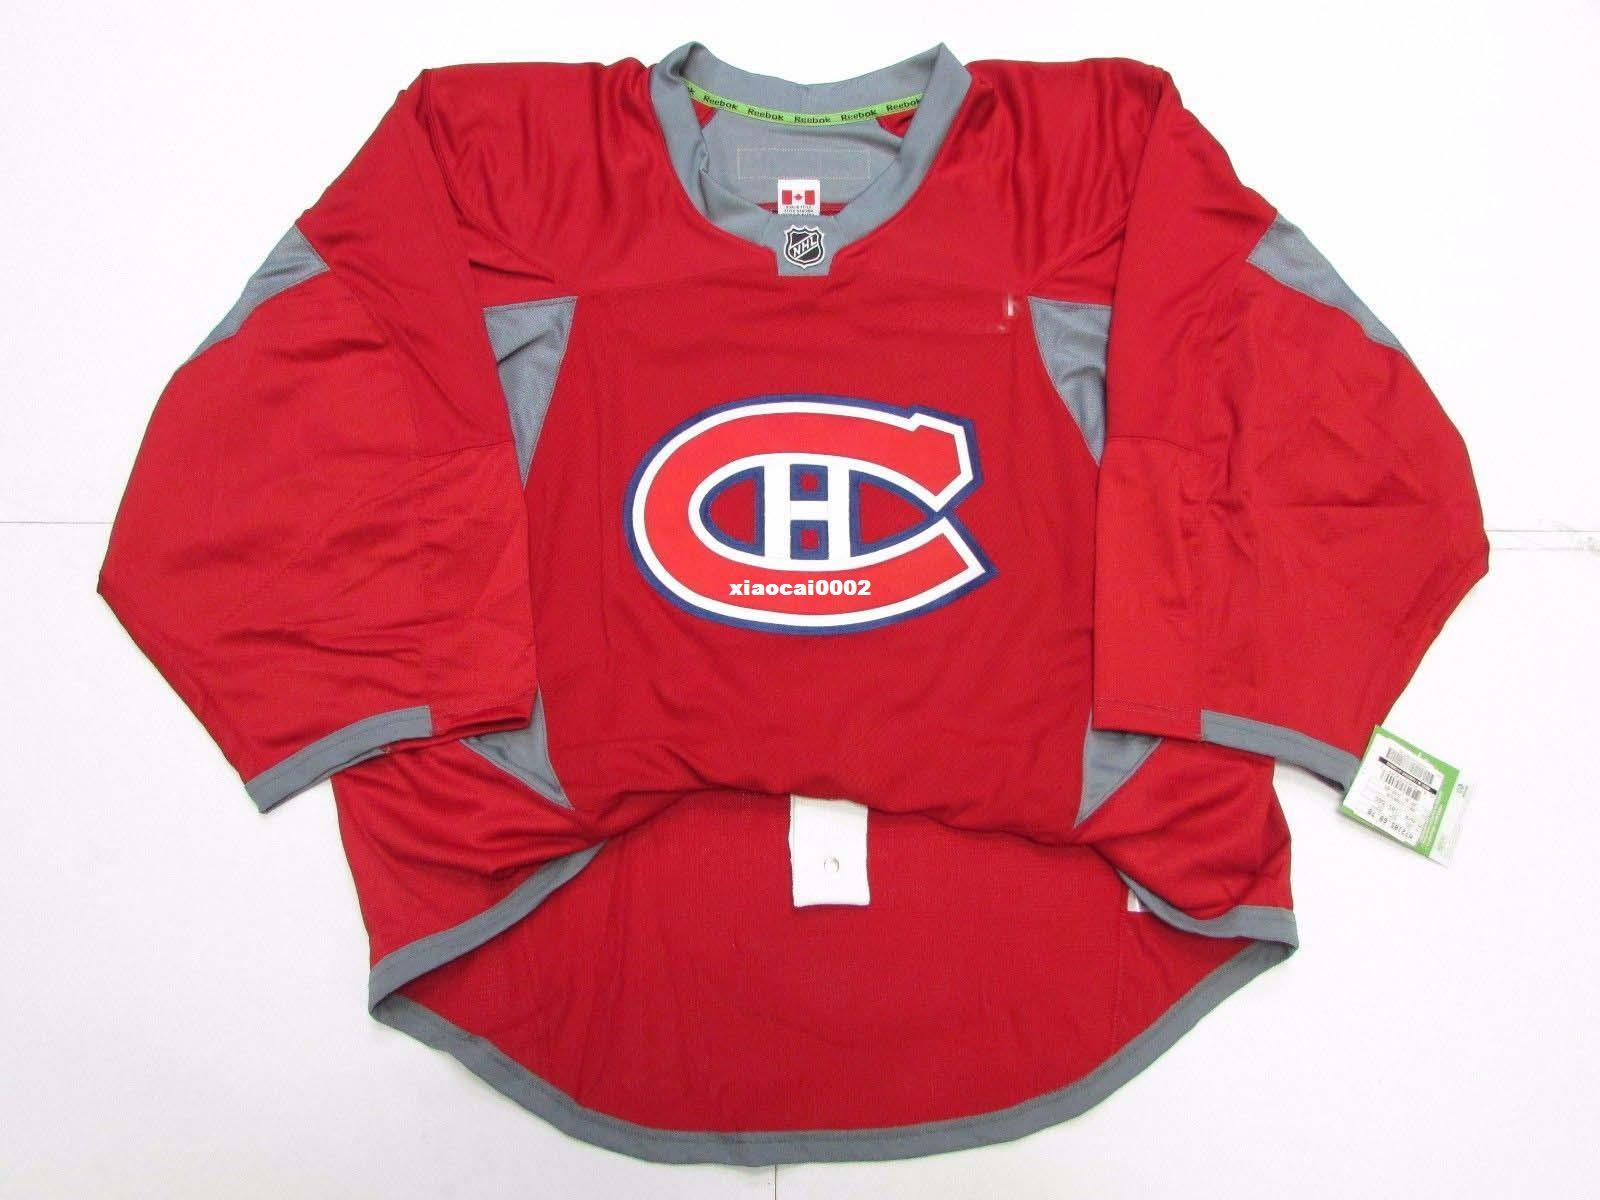 d170ce700b5 2019 Cheap Custom MONTREAL CANADIENS AUTHENTIC HOME RED EDGE PRACTICE  JERSEY GOALIE CUT 56 Mens Stitched Personalized Hockey Jerseys From  Xiaocai0002, ...